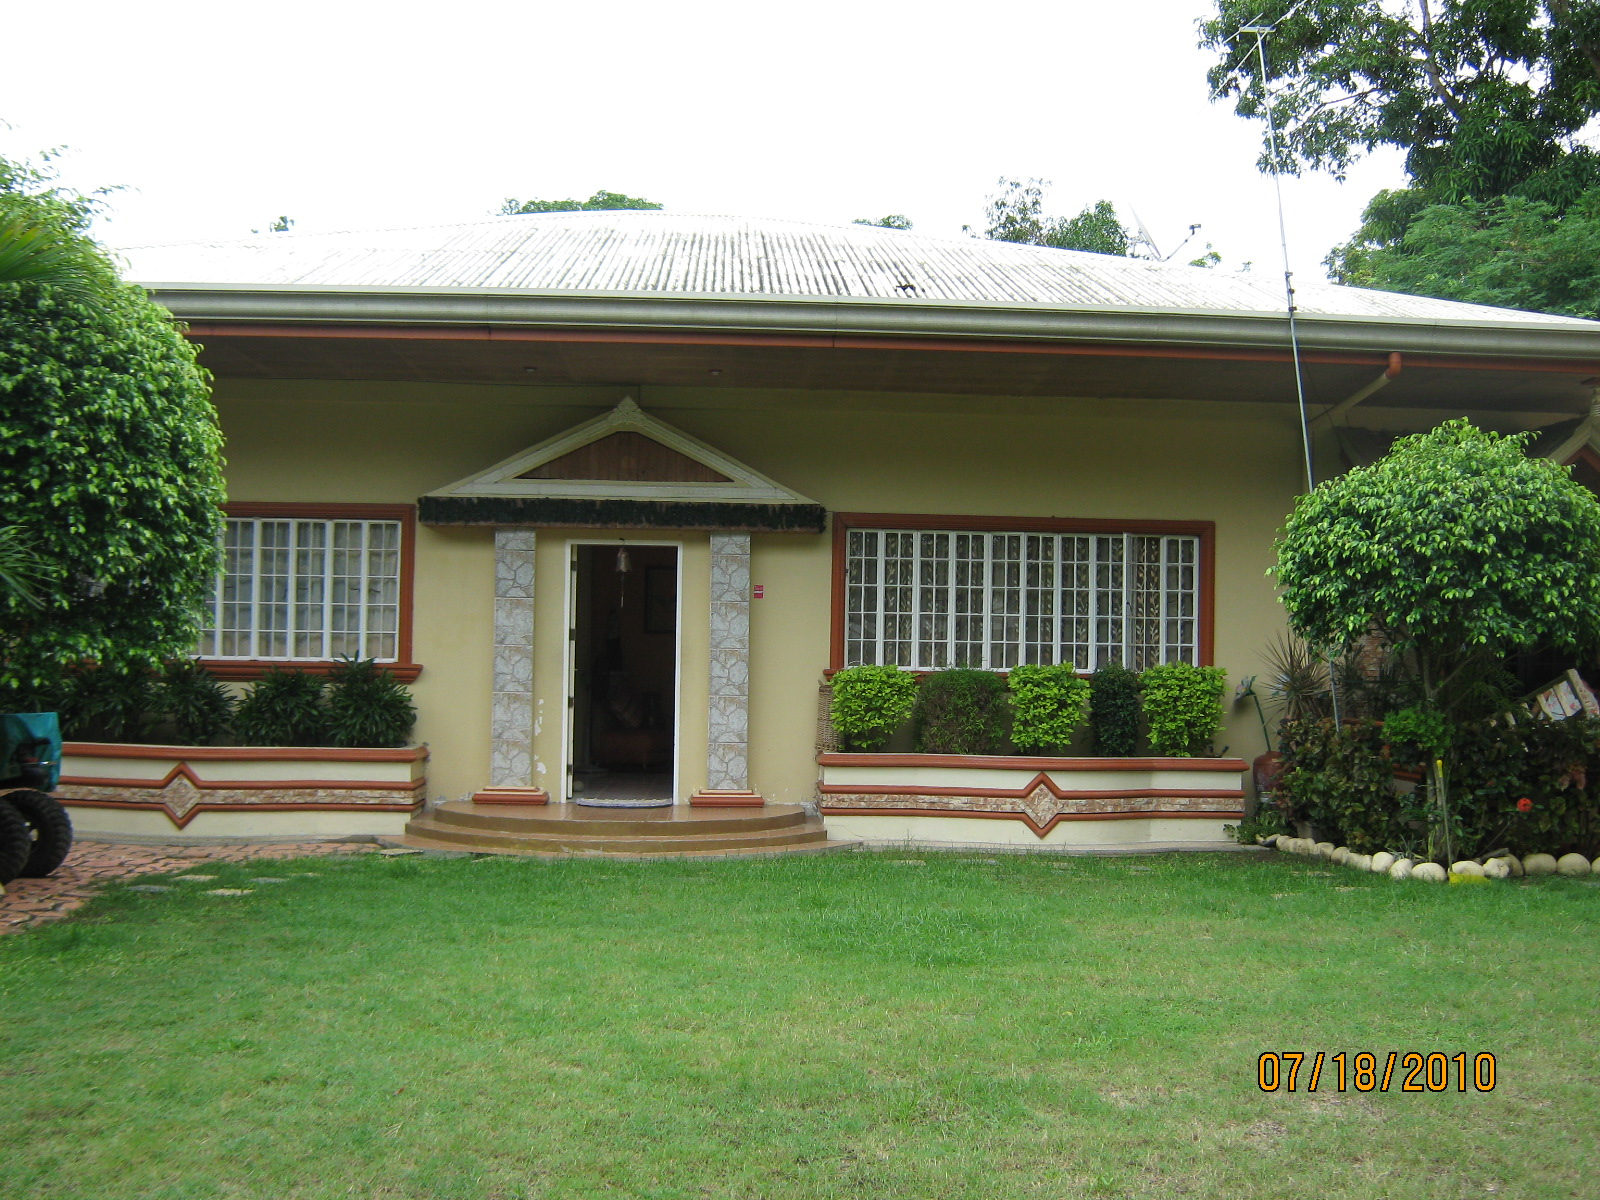 FOR SALE: La Union Listing of Real Estate Properties in the